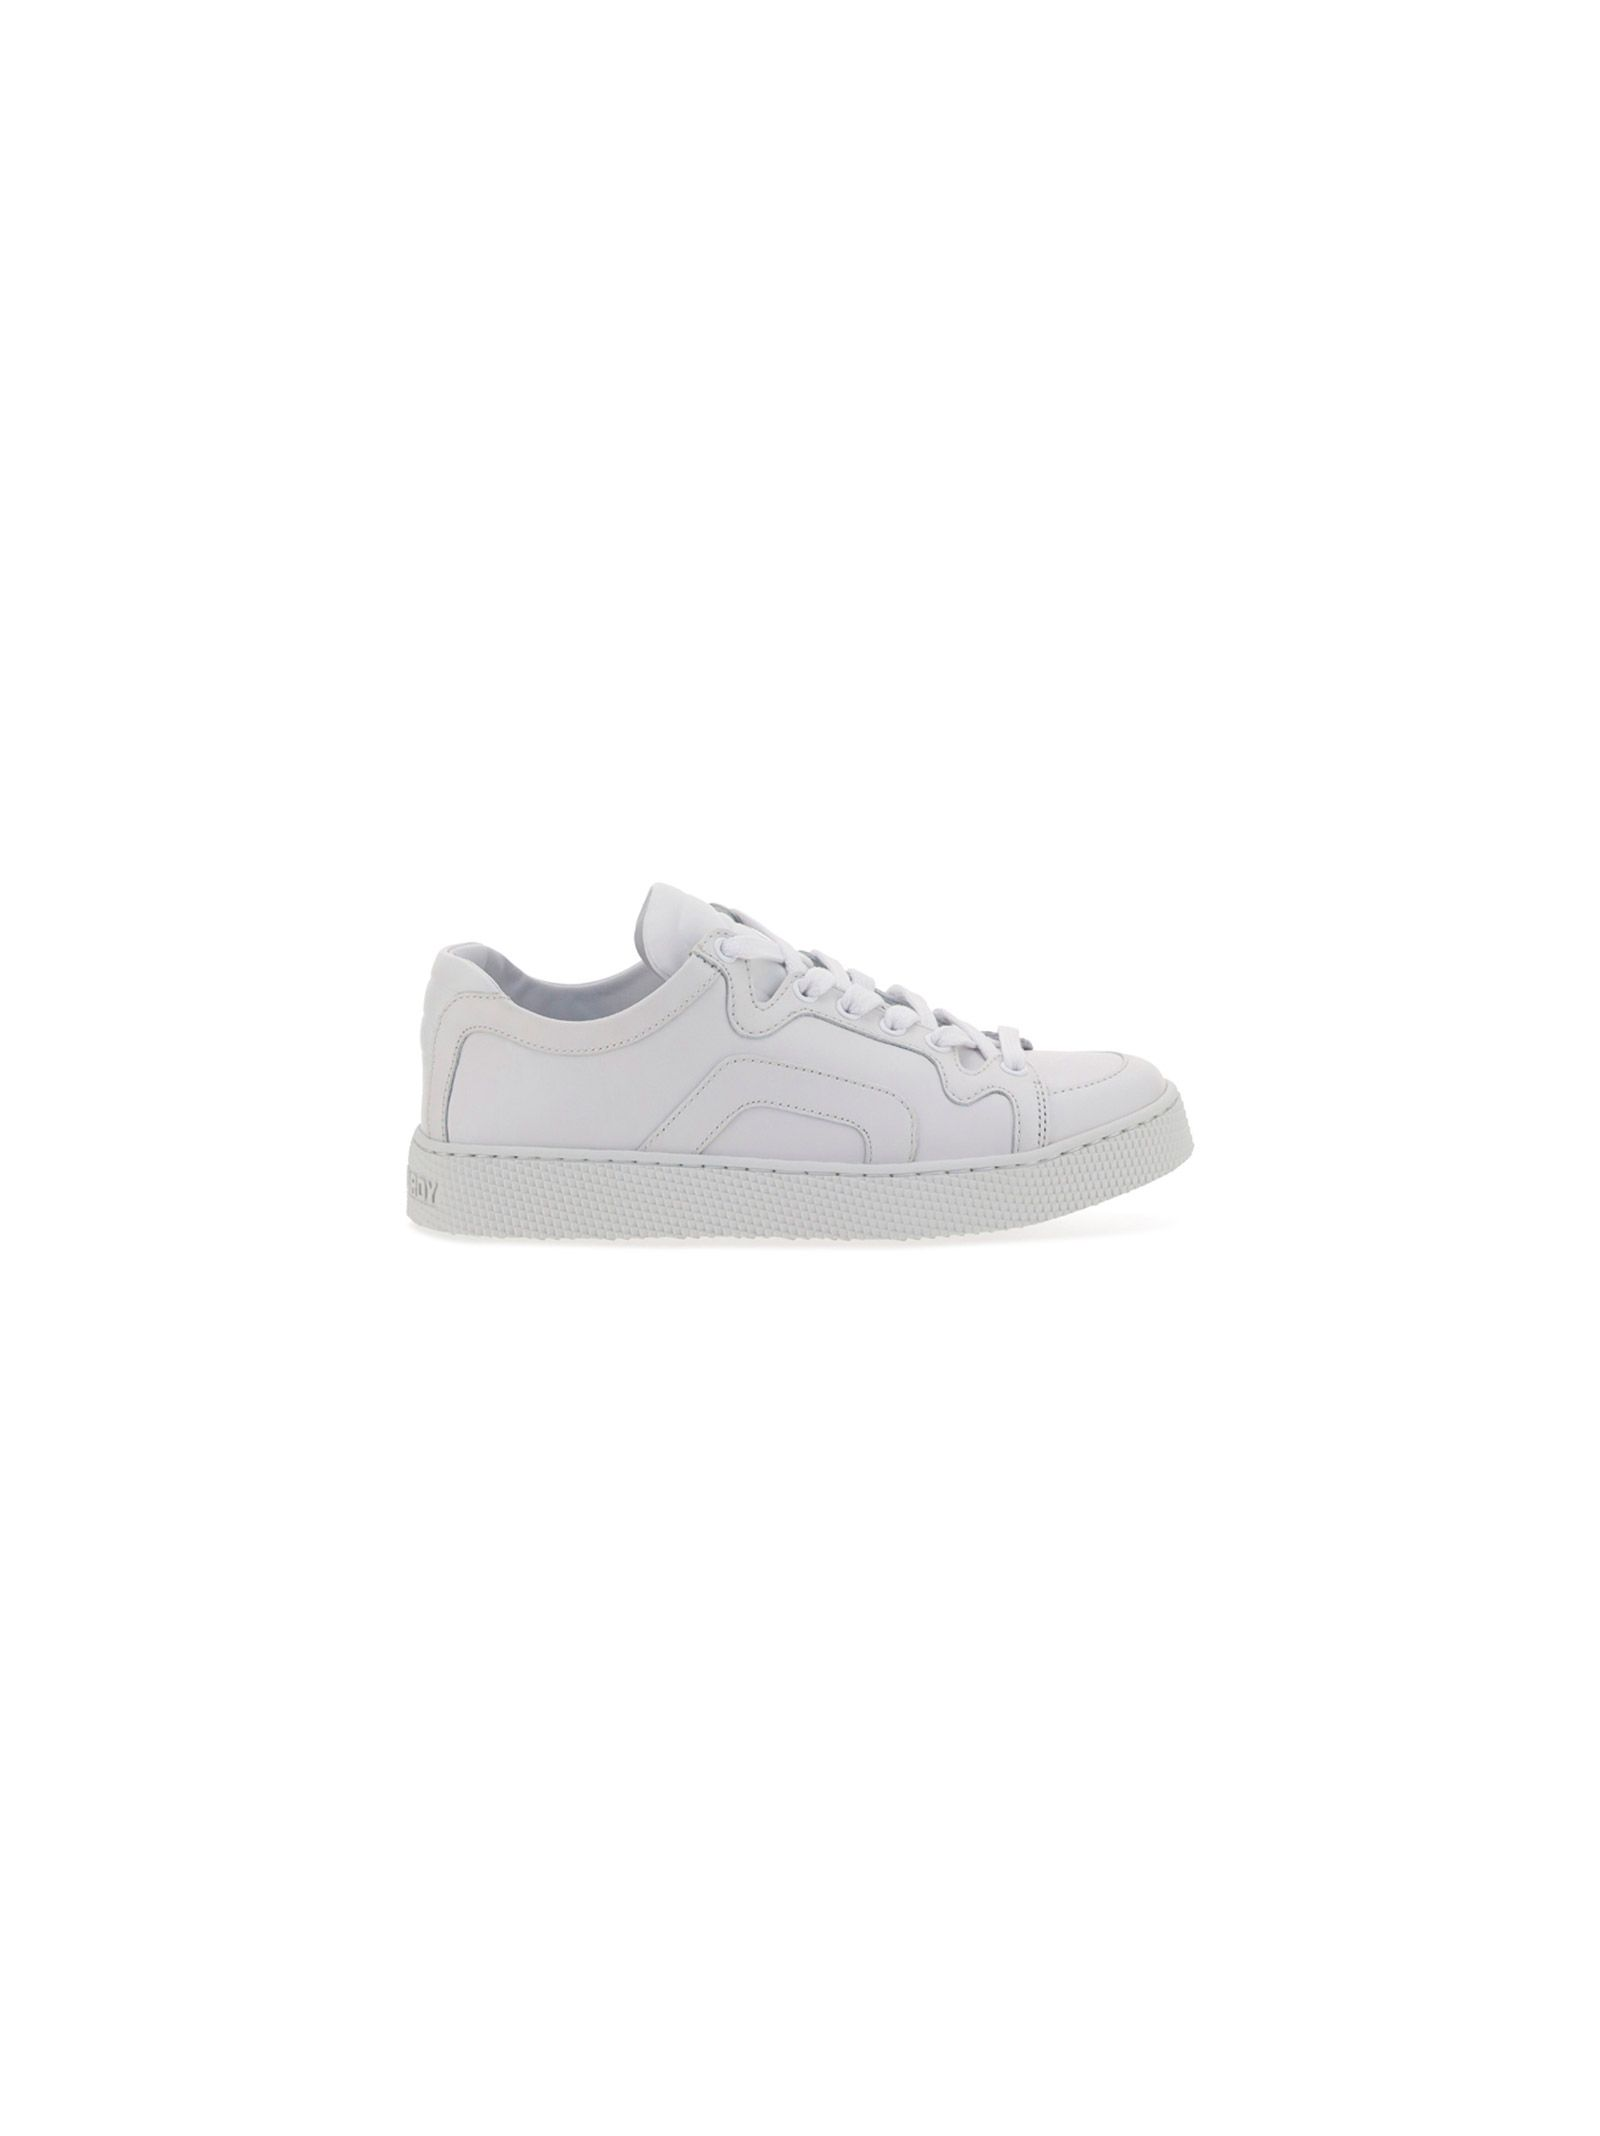 Pierre Hardy PIERRE HARDY WOMEN'S VS02WHITE WHITE OTHER MATERIALS SNEAKERS